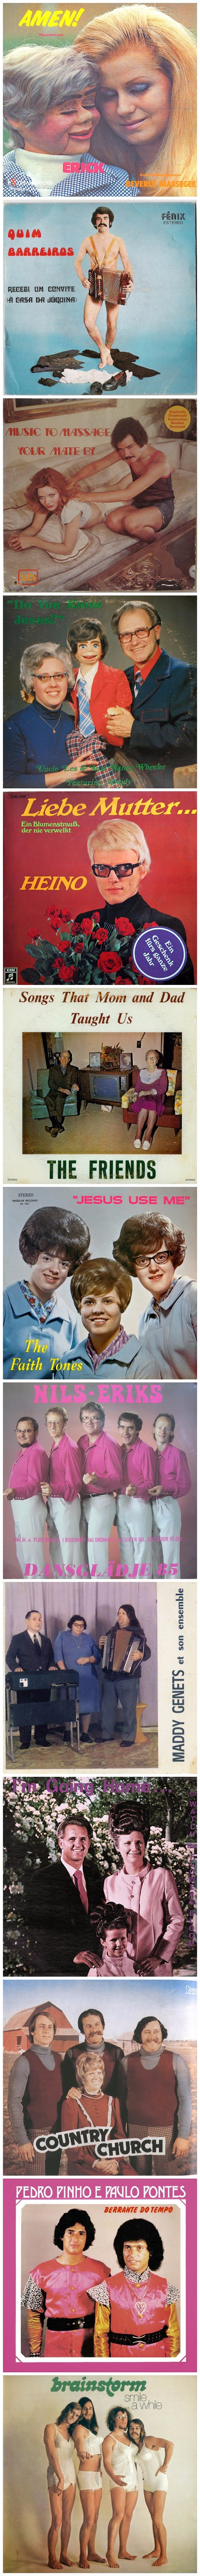 Funny Awkward Old Album Covers Picture Collection